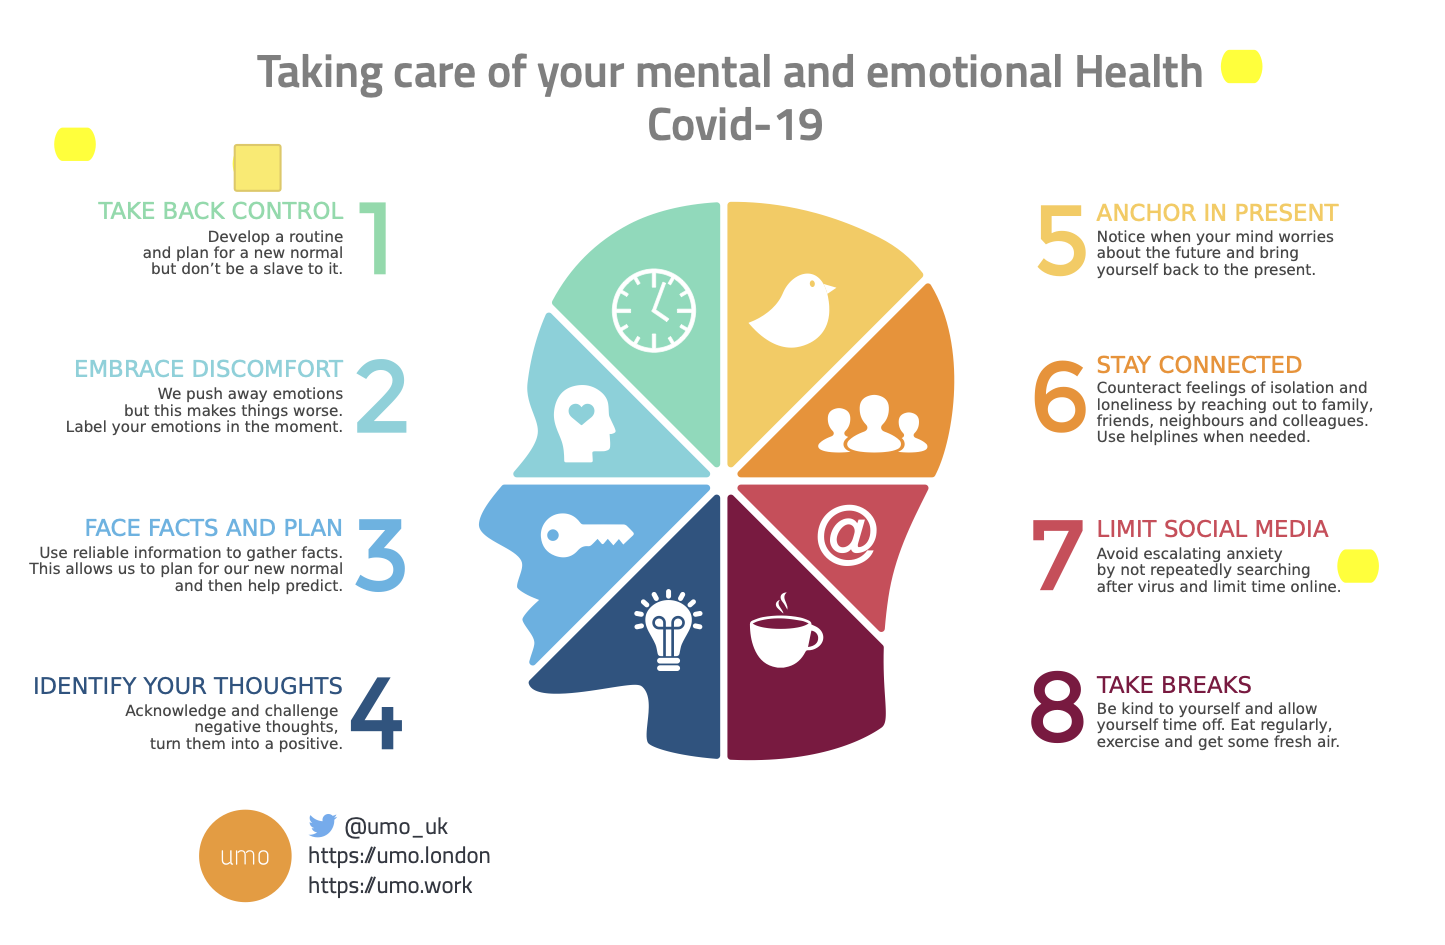 Taking care of your mental health with covid-19